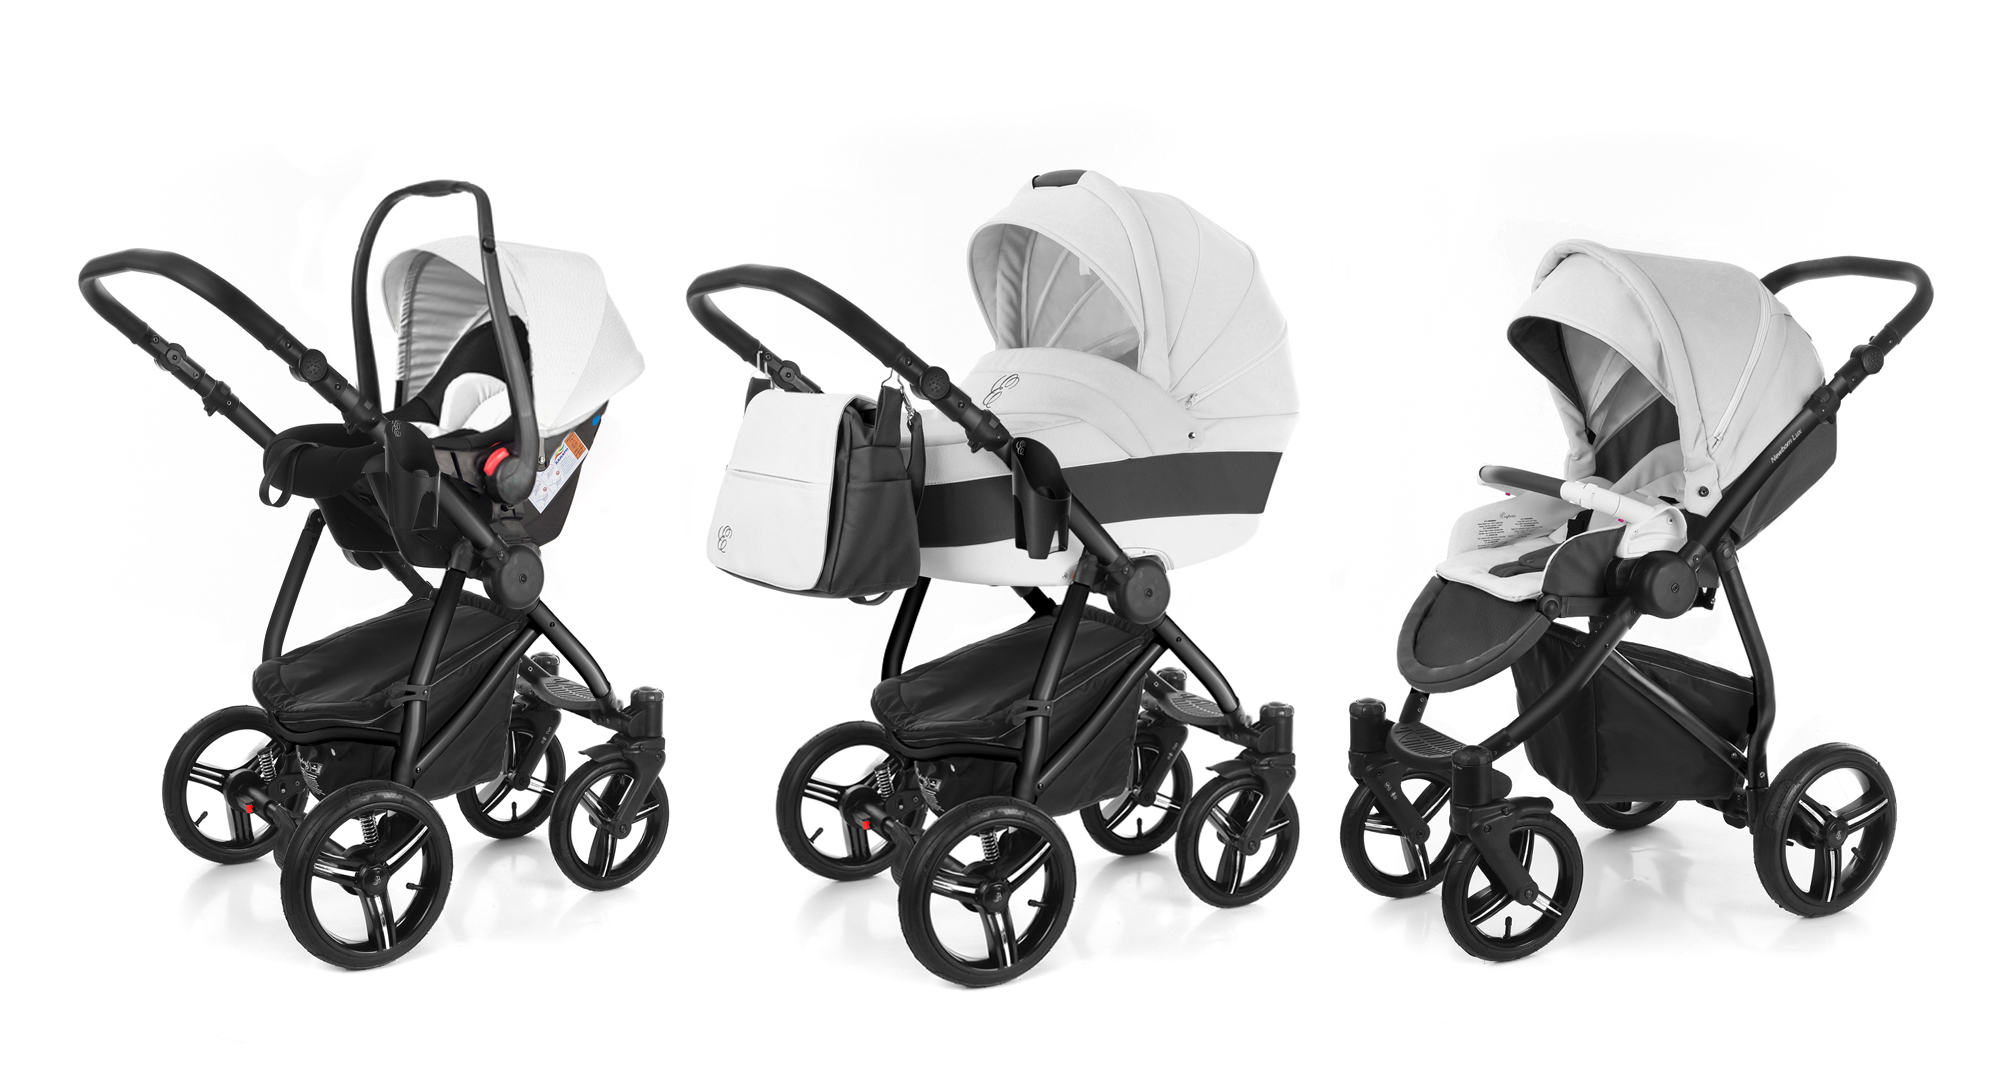 Коляска 3 в 1 Esspero Grand Newborn Lux (шасси Black). Фото N2